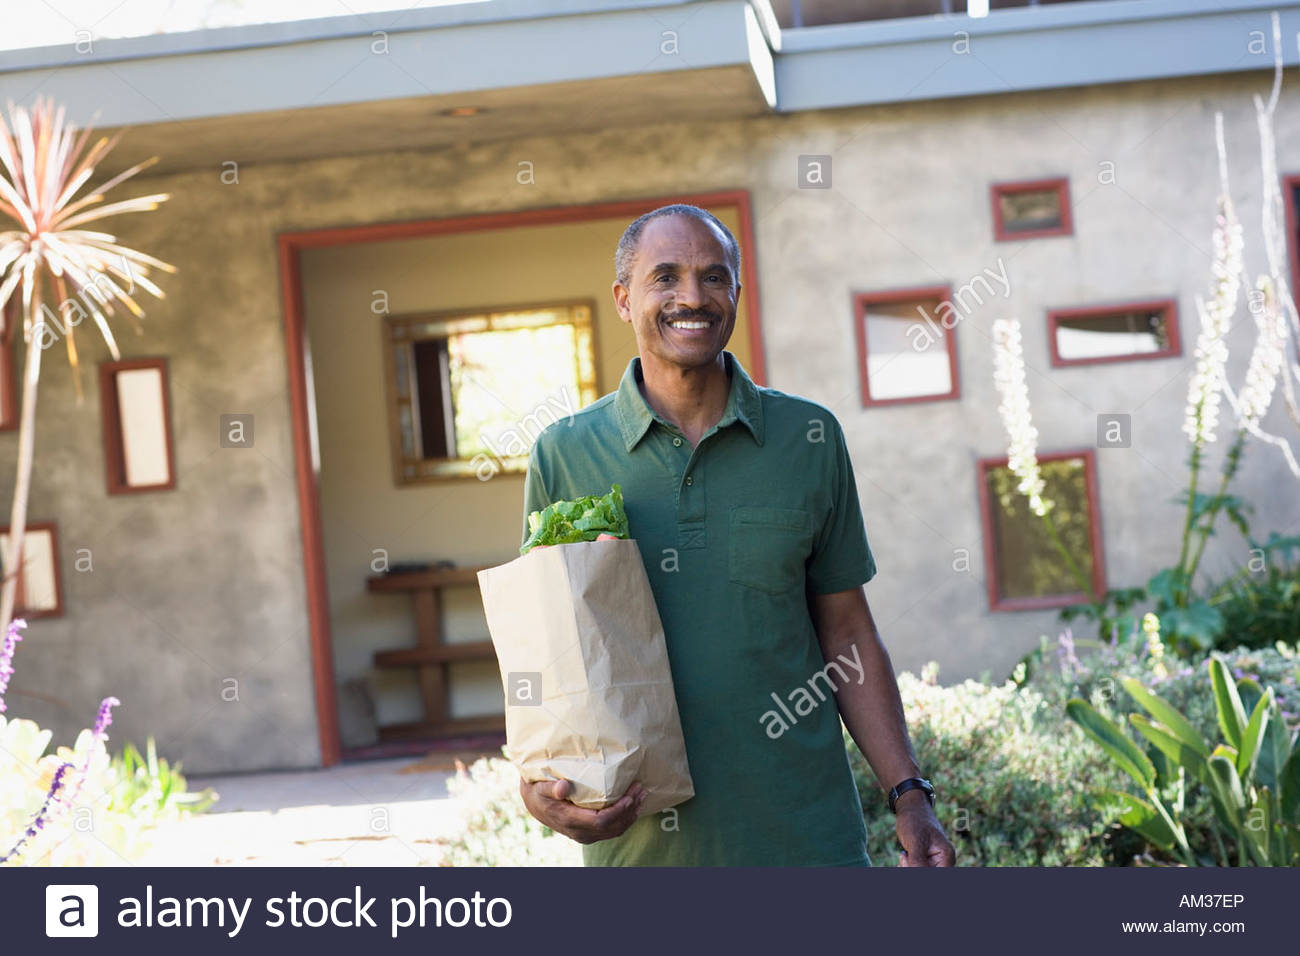 Man with brown bag of groceries outside home - Stock Image